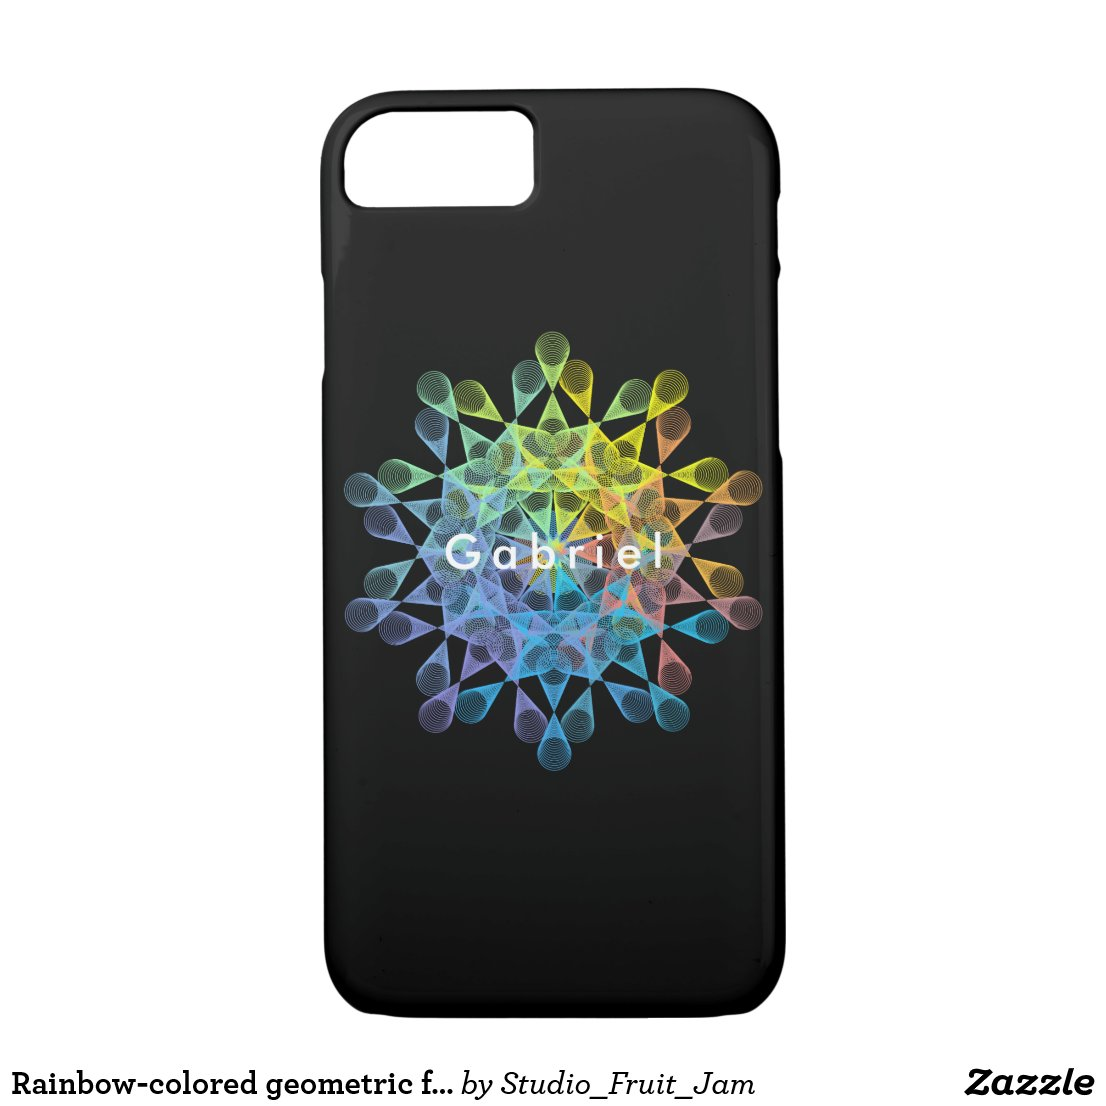 Rainbow-colored geometric figure of epitrochoid iPhone 8/7 case